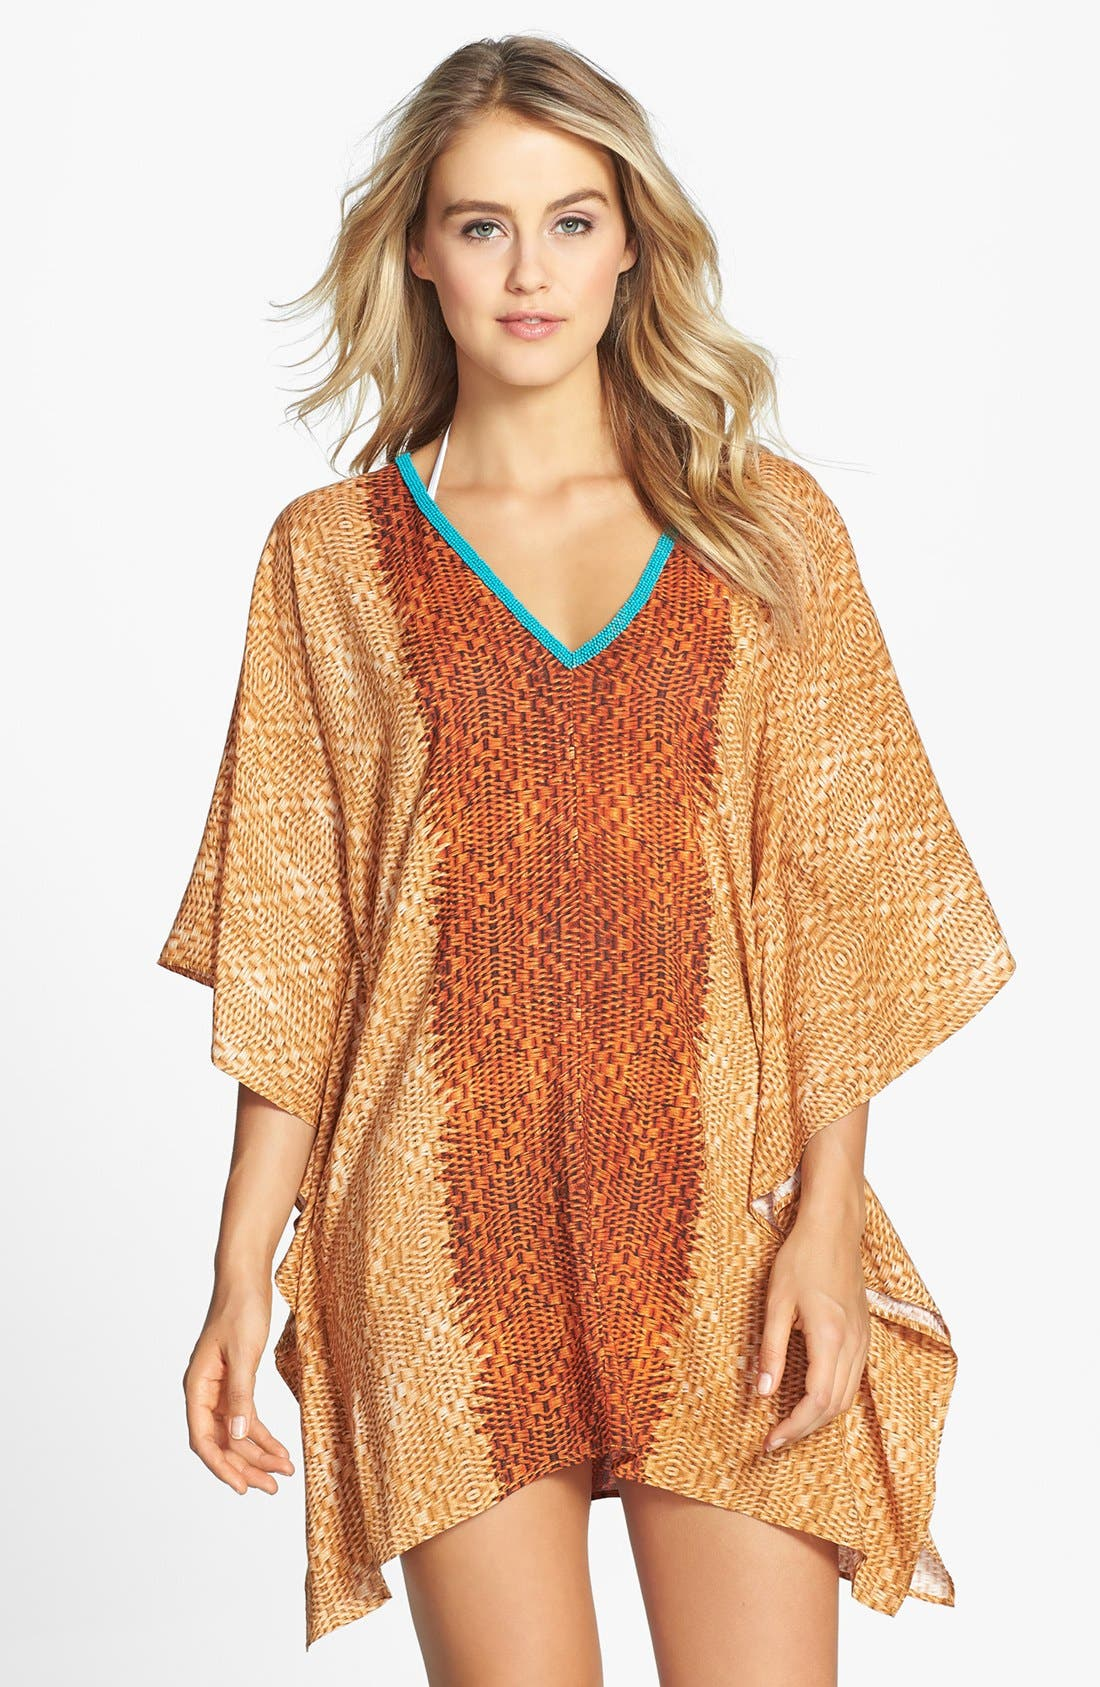 Alternate Image 1 Selected - ViX Swimwear 'Para' Beaded V-Neck Cover-Up Caftan